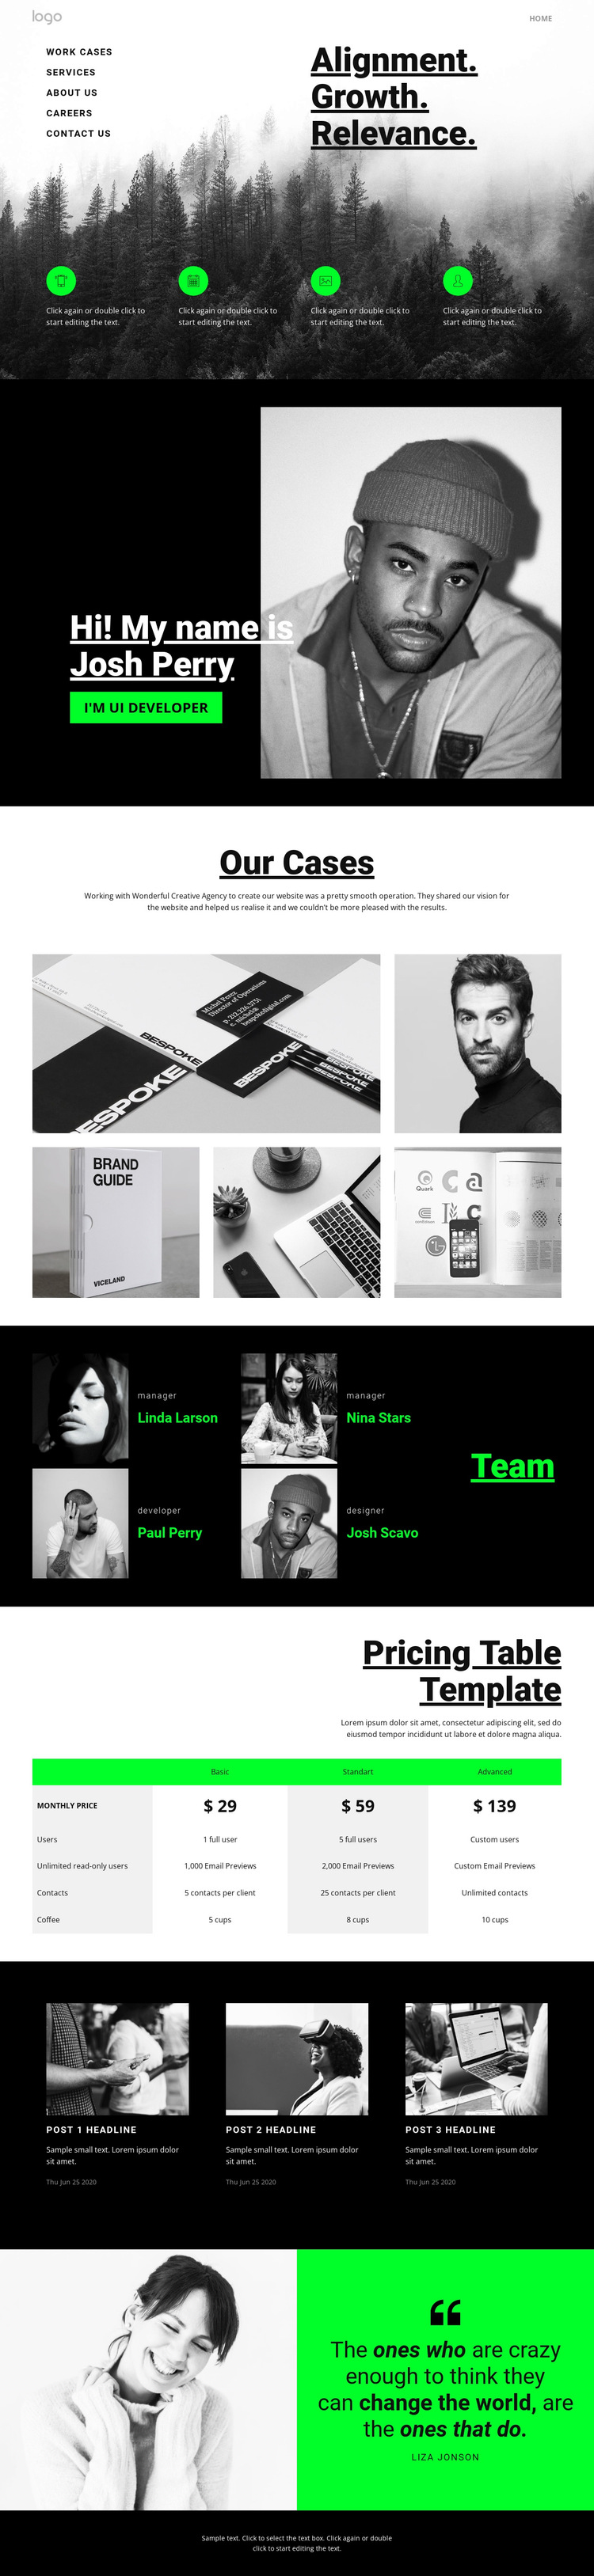 Relevance in business HTML5 Template